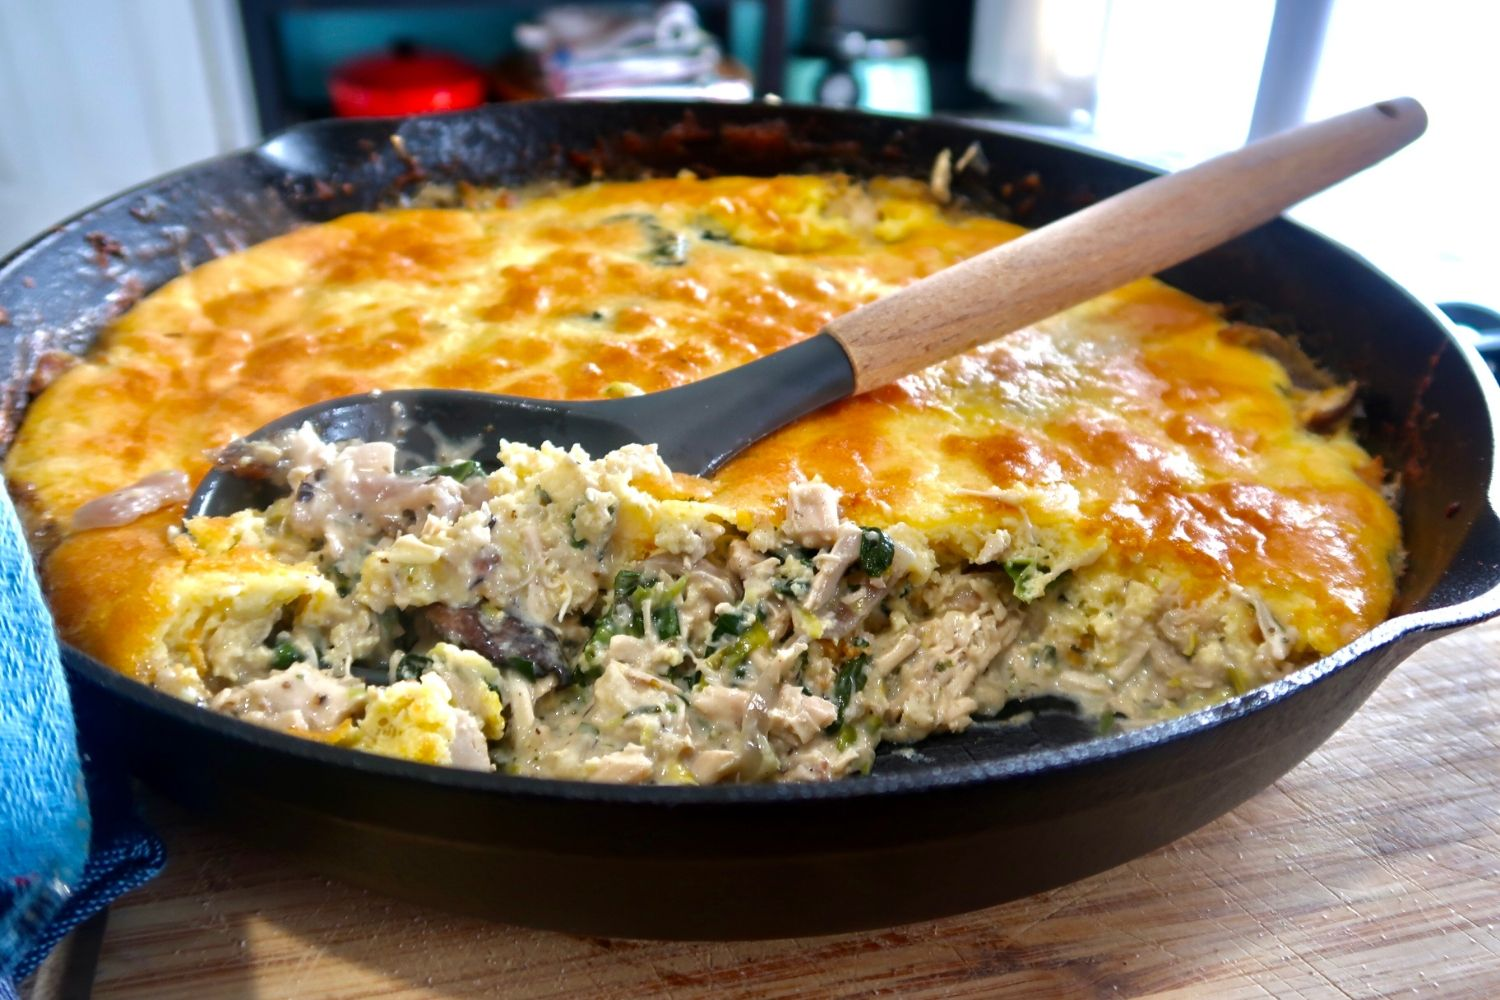 Chicken pot pie recipes keto in the country